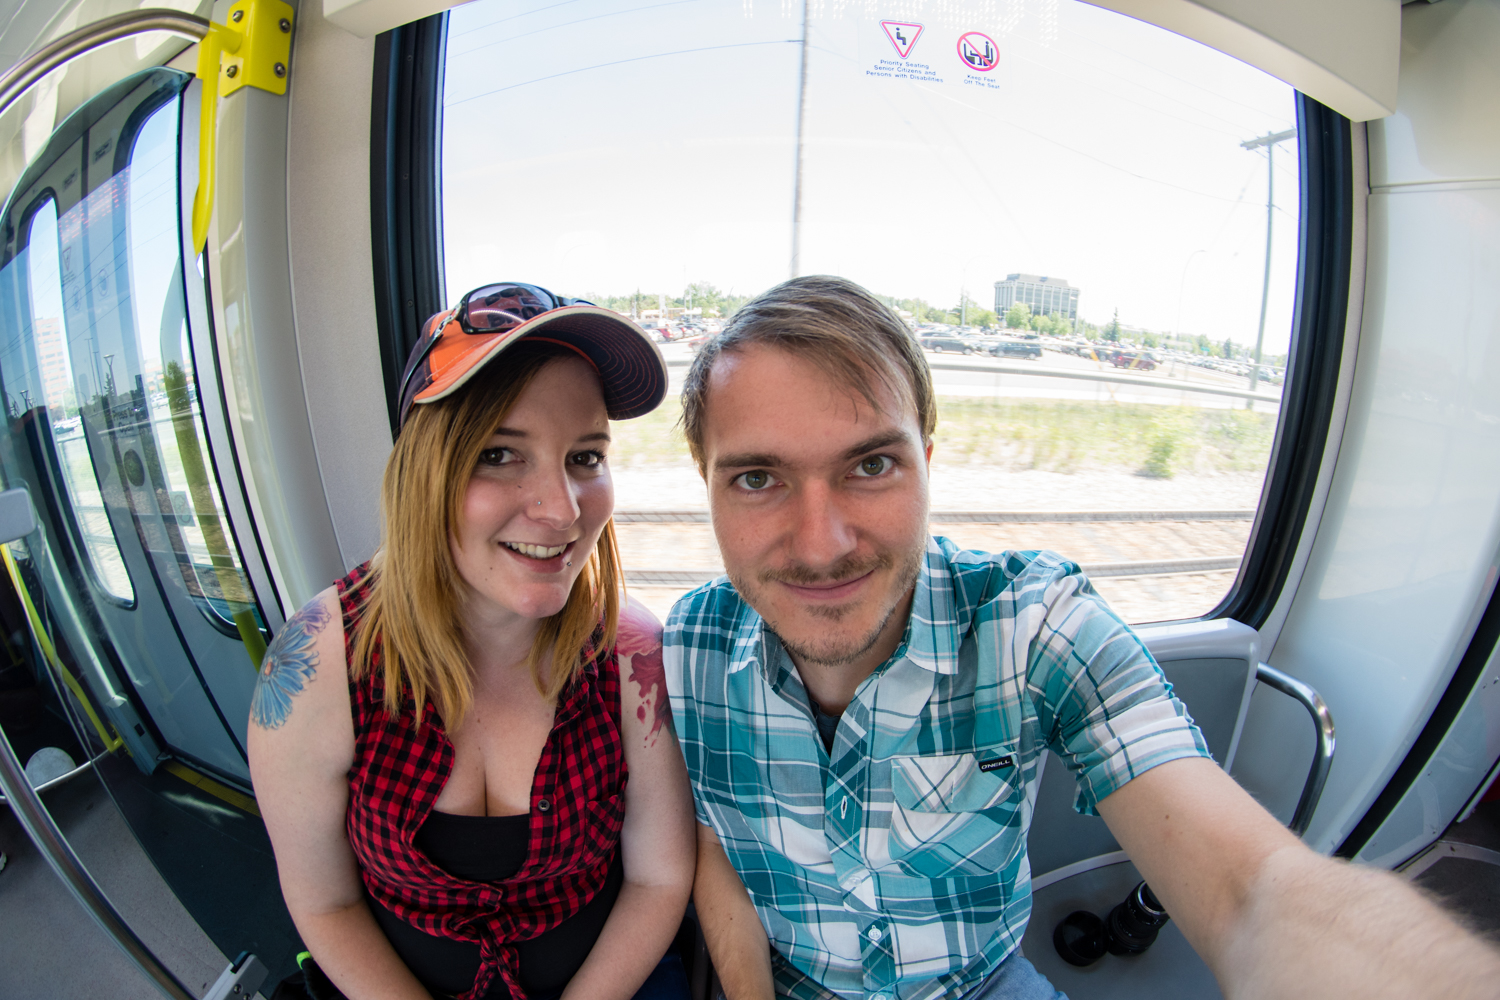 Self portrait with Erika on the way to the stampede. She had kitted me out with a plaid shirt so I could fully embrace the country lifestyle, and to not look like an absolute tourist.